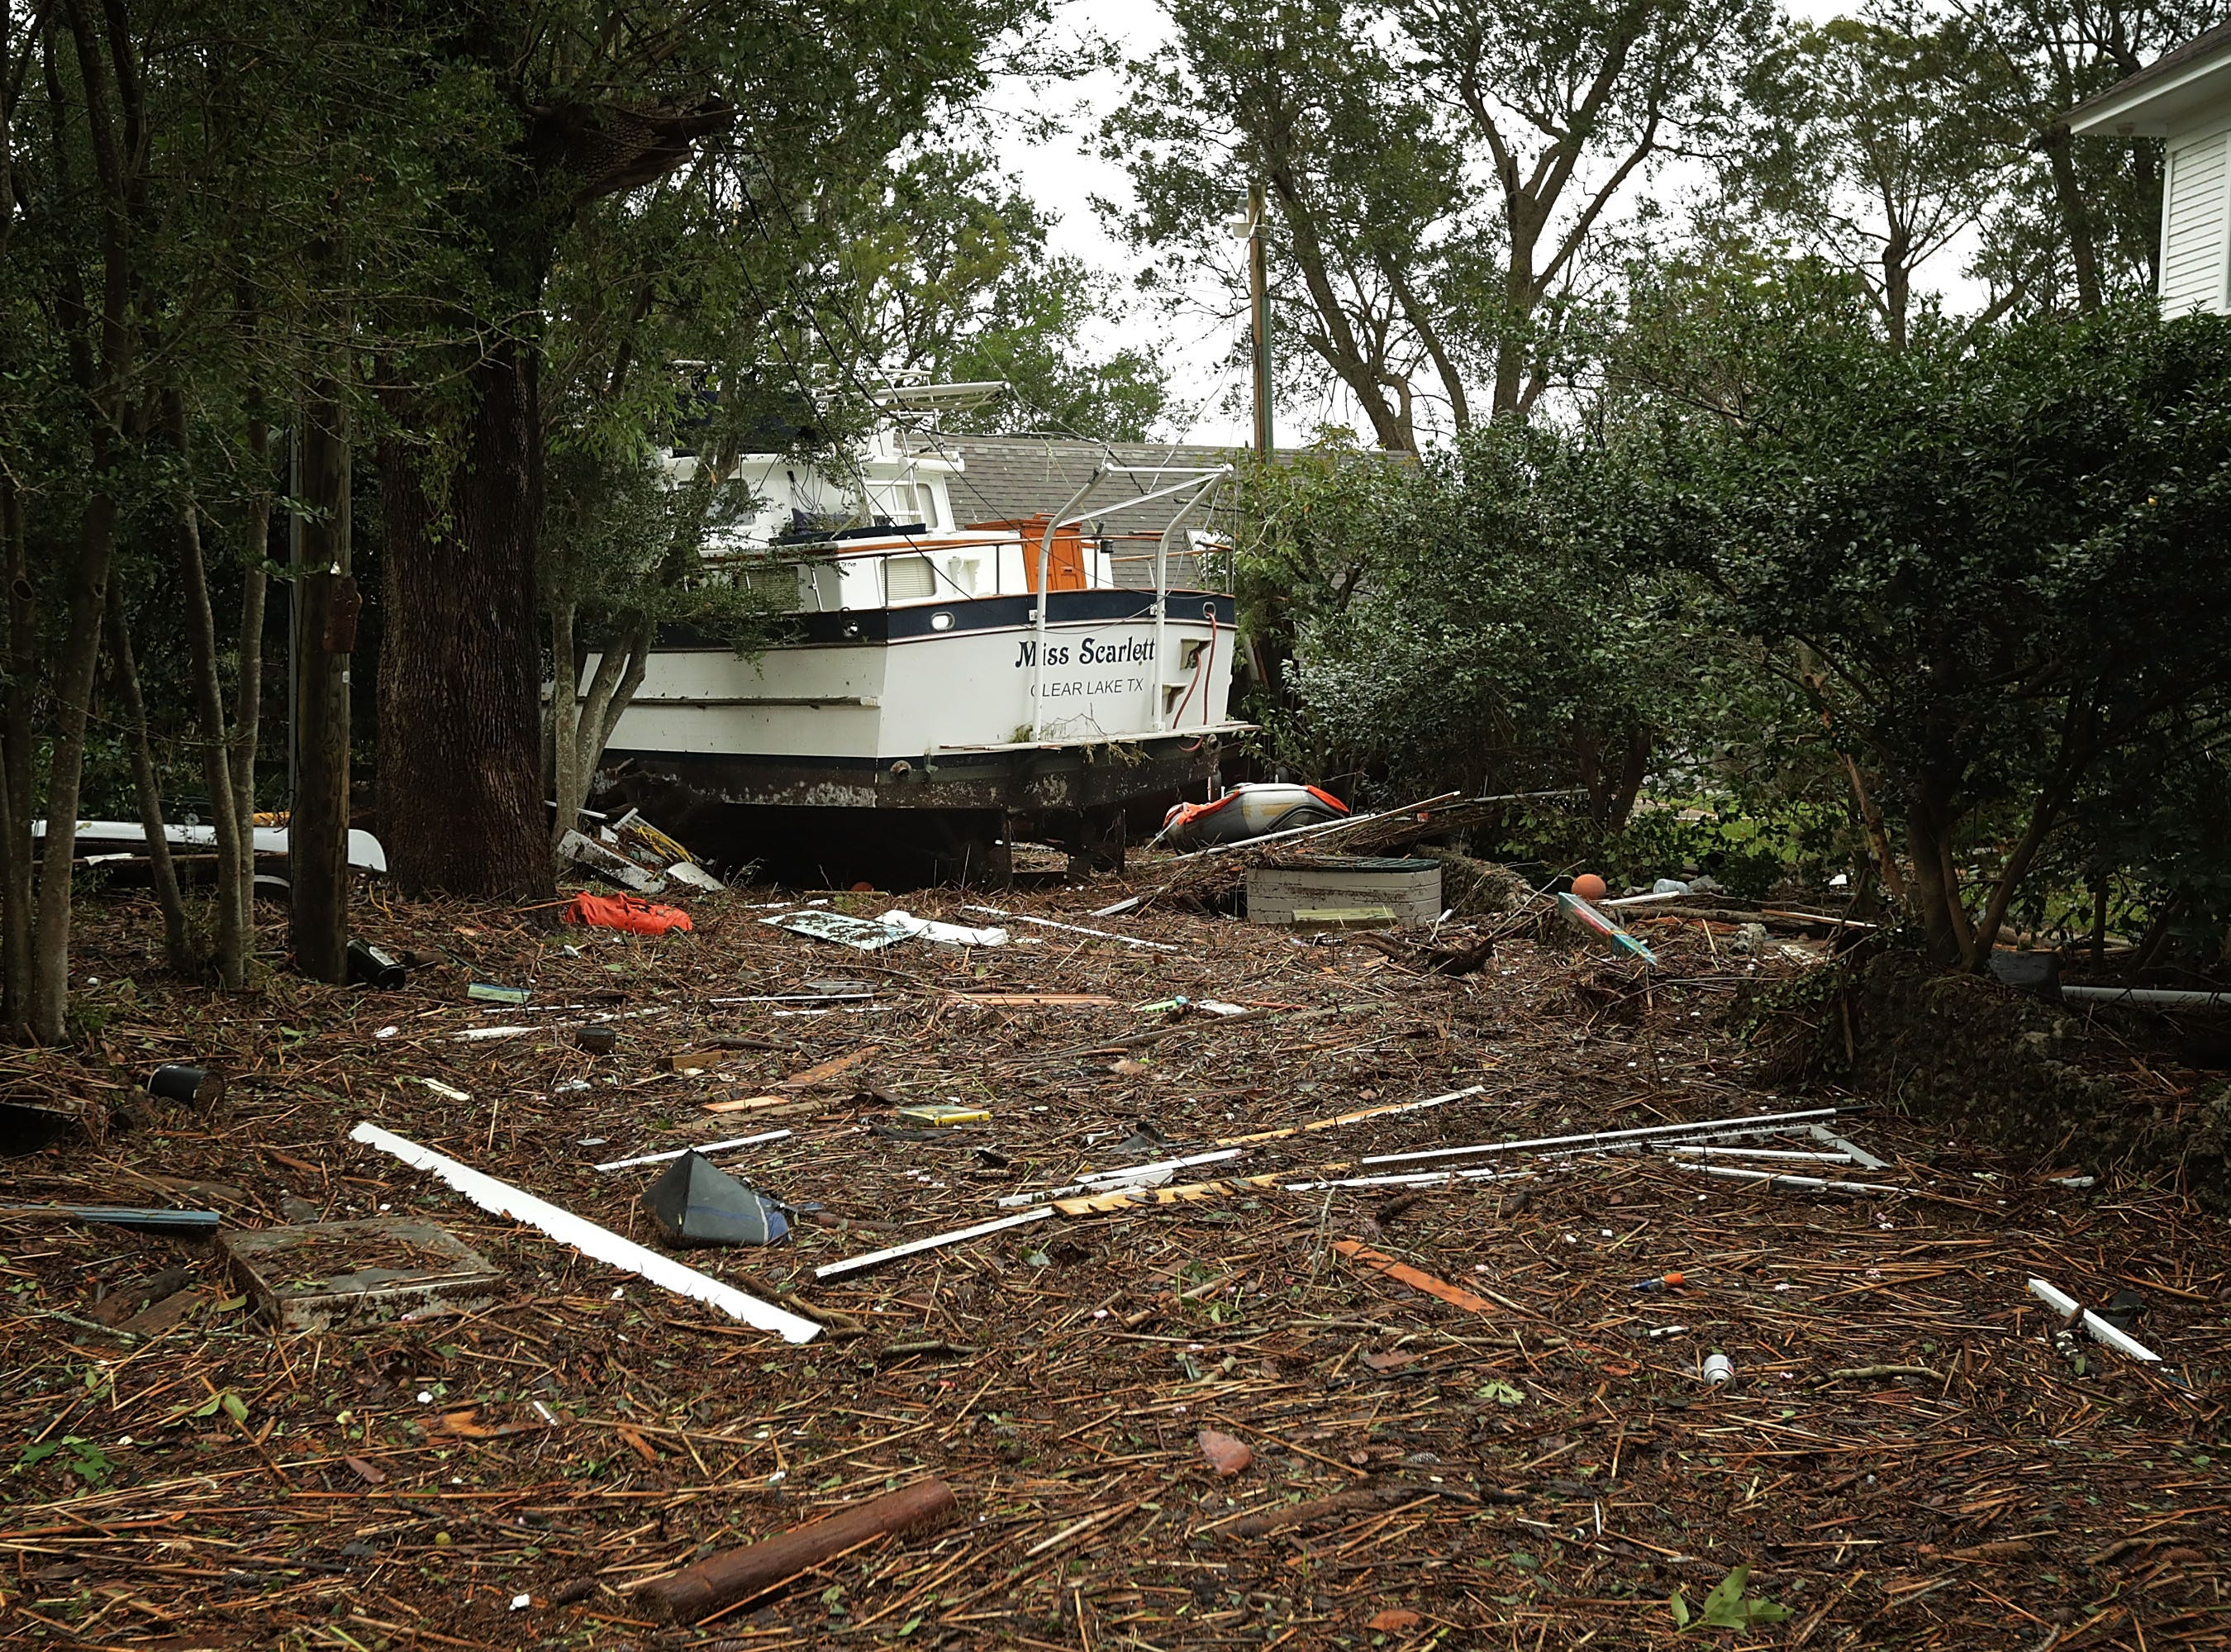 A boat sits at the end of a driveway after a four-foot storm surge produced by Hurricane Florence ripped through the this historic neighborhood along the Nuese River Sept. 15, 2018 in New Bern, N.C.. Hurricane Florence made landfall in North Carolina as a Category 1 storm Friday and at least five deaths have been attributed to the storm, which continues to produce heavy rain and strong winds extending out nearly 200 miles.